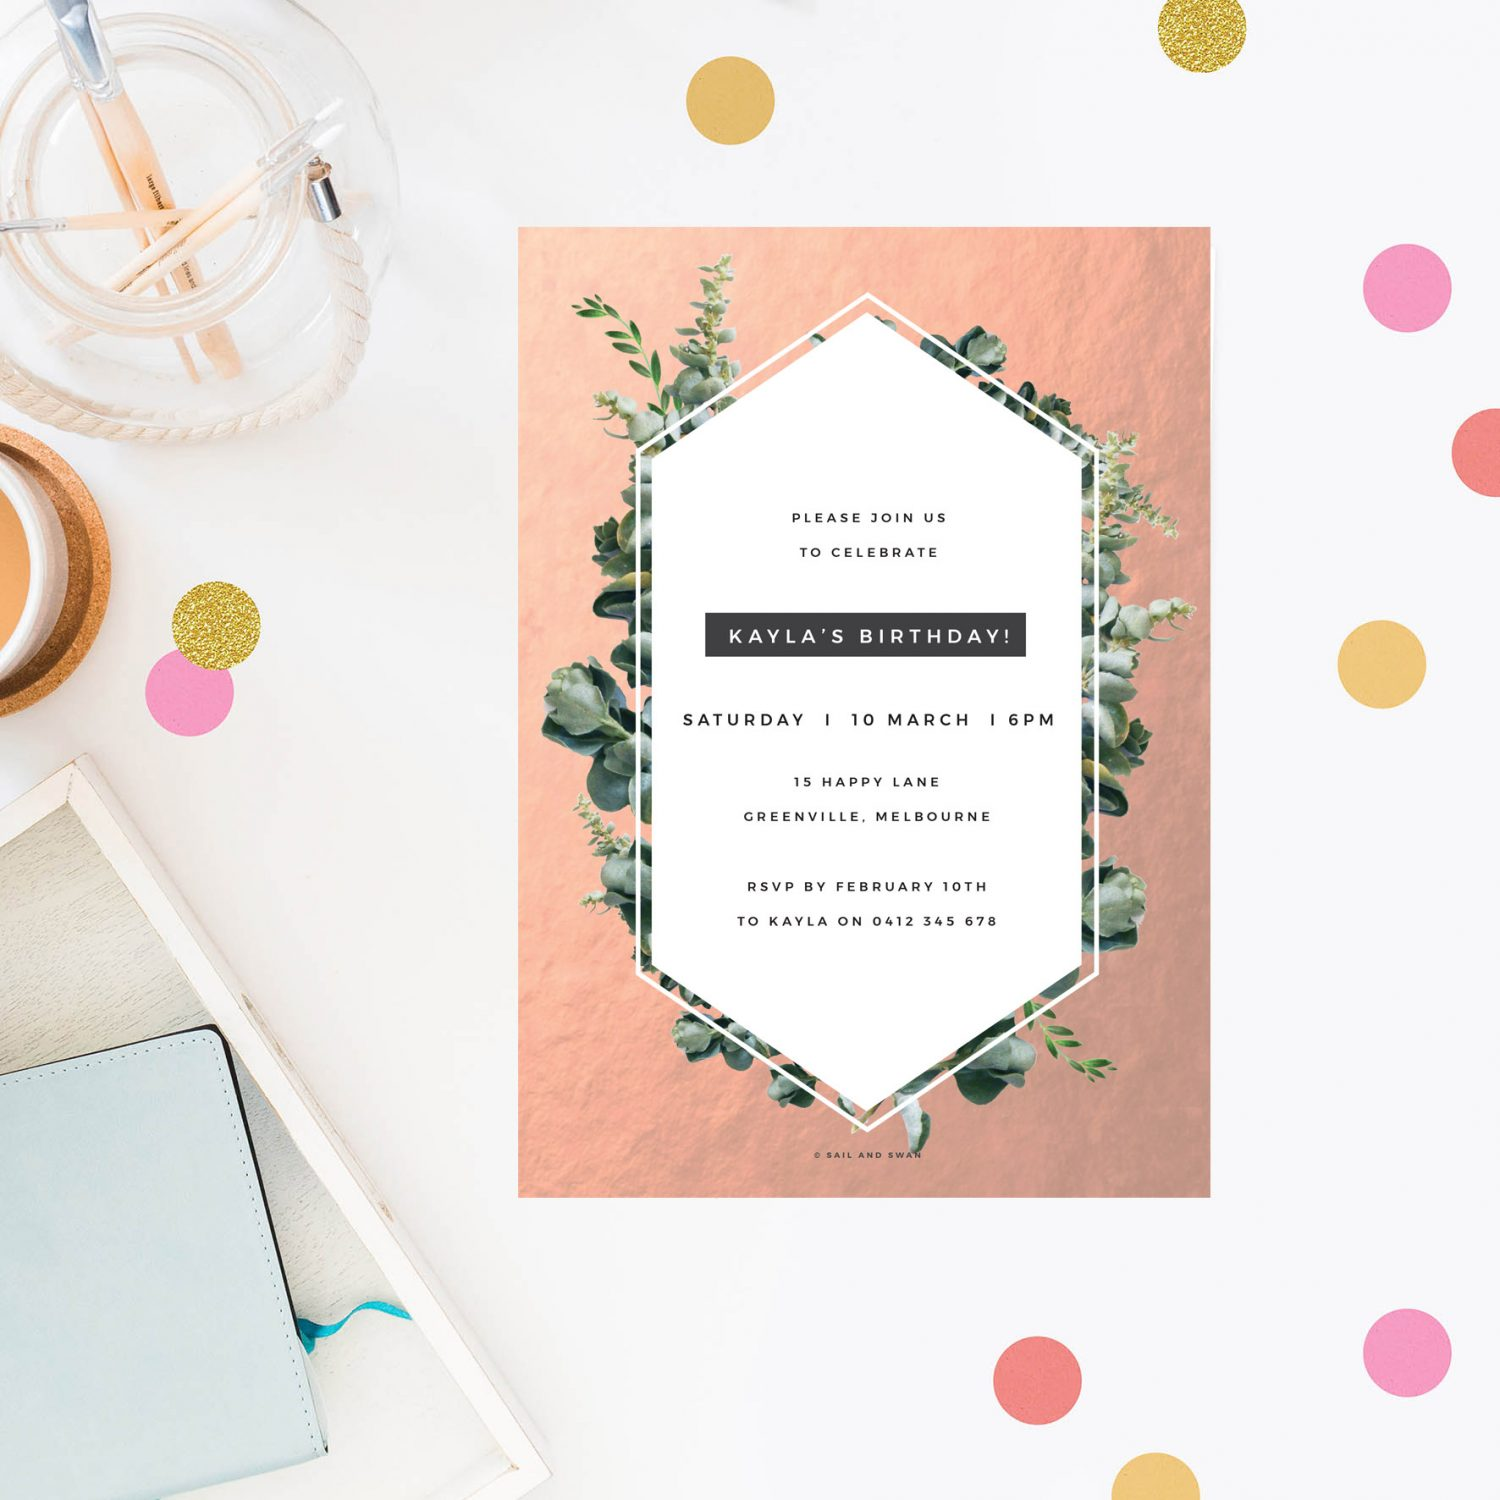 Rose Gold Botanical Birthday Invitations - Modern Greenery